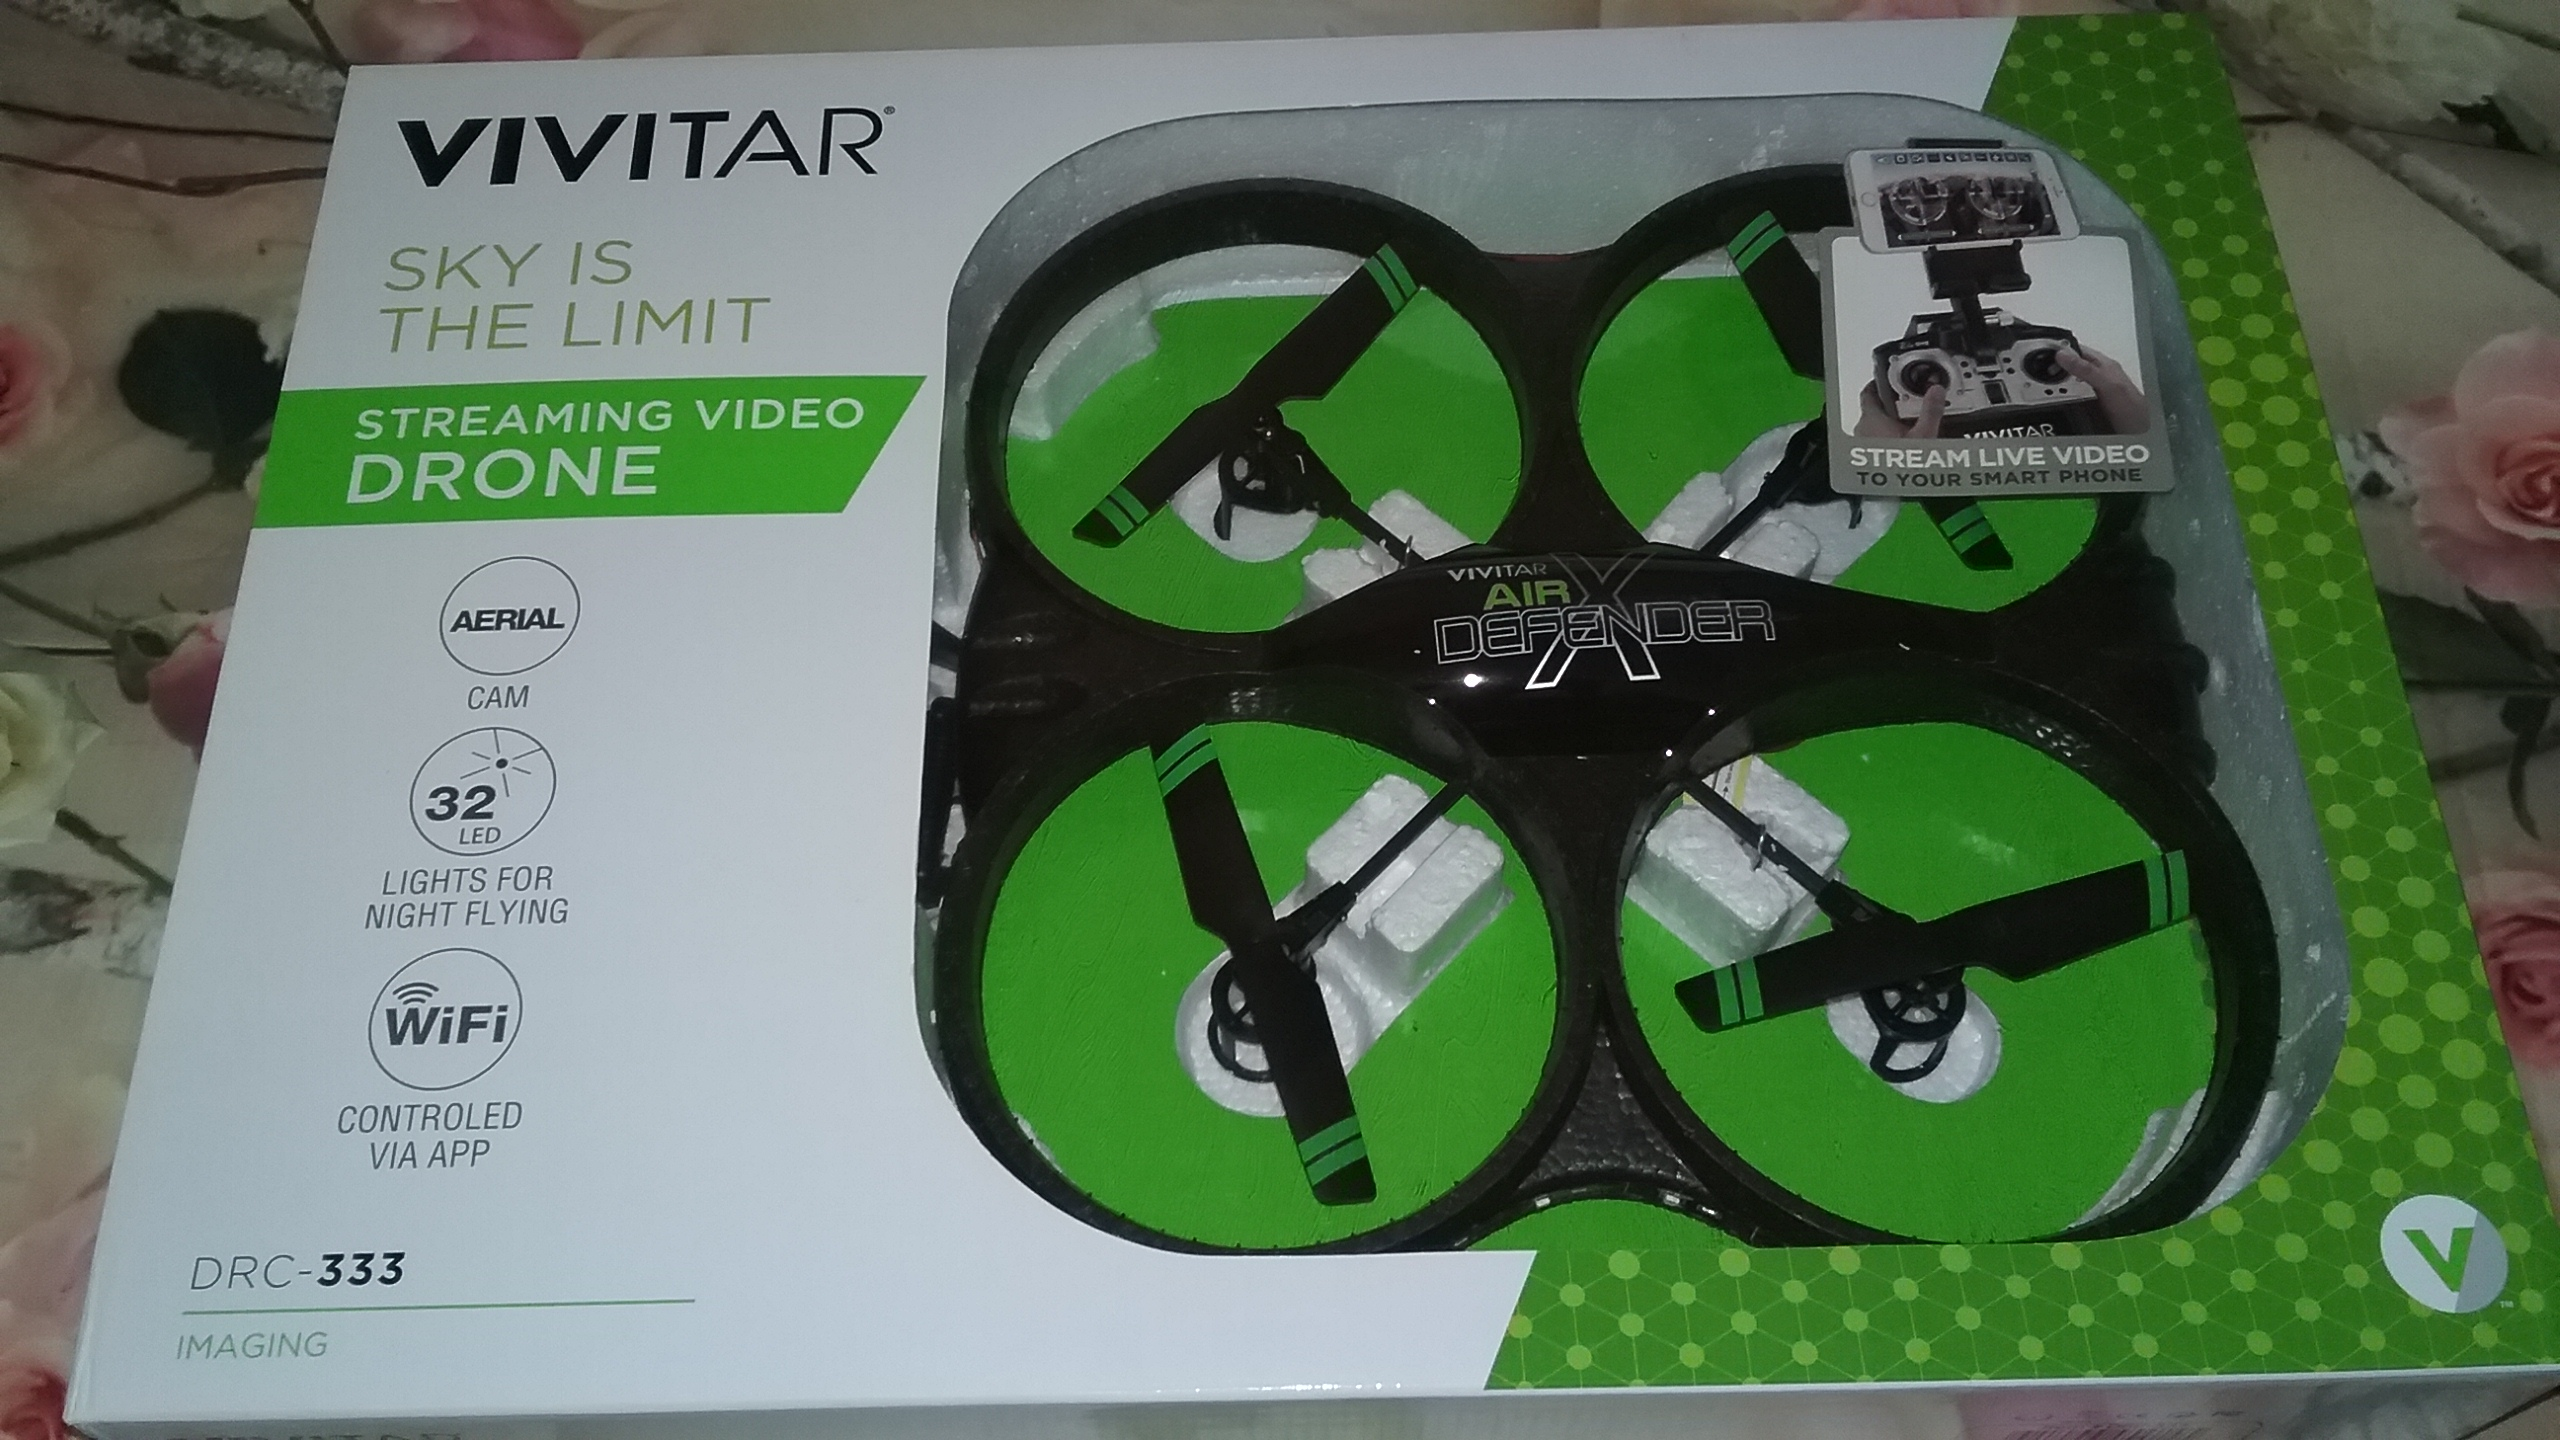 2016 Holiday Guide, Come Fly High With Me With Vivitars DRC-333 Air Defender X Camera Drone.